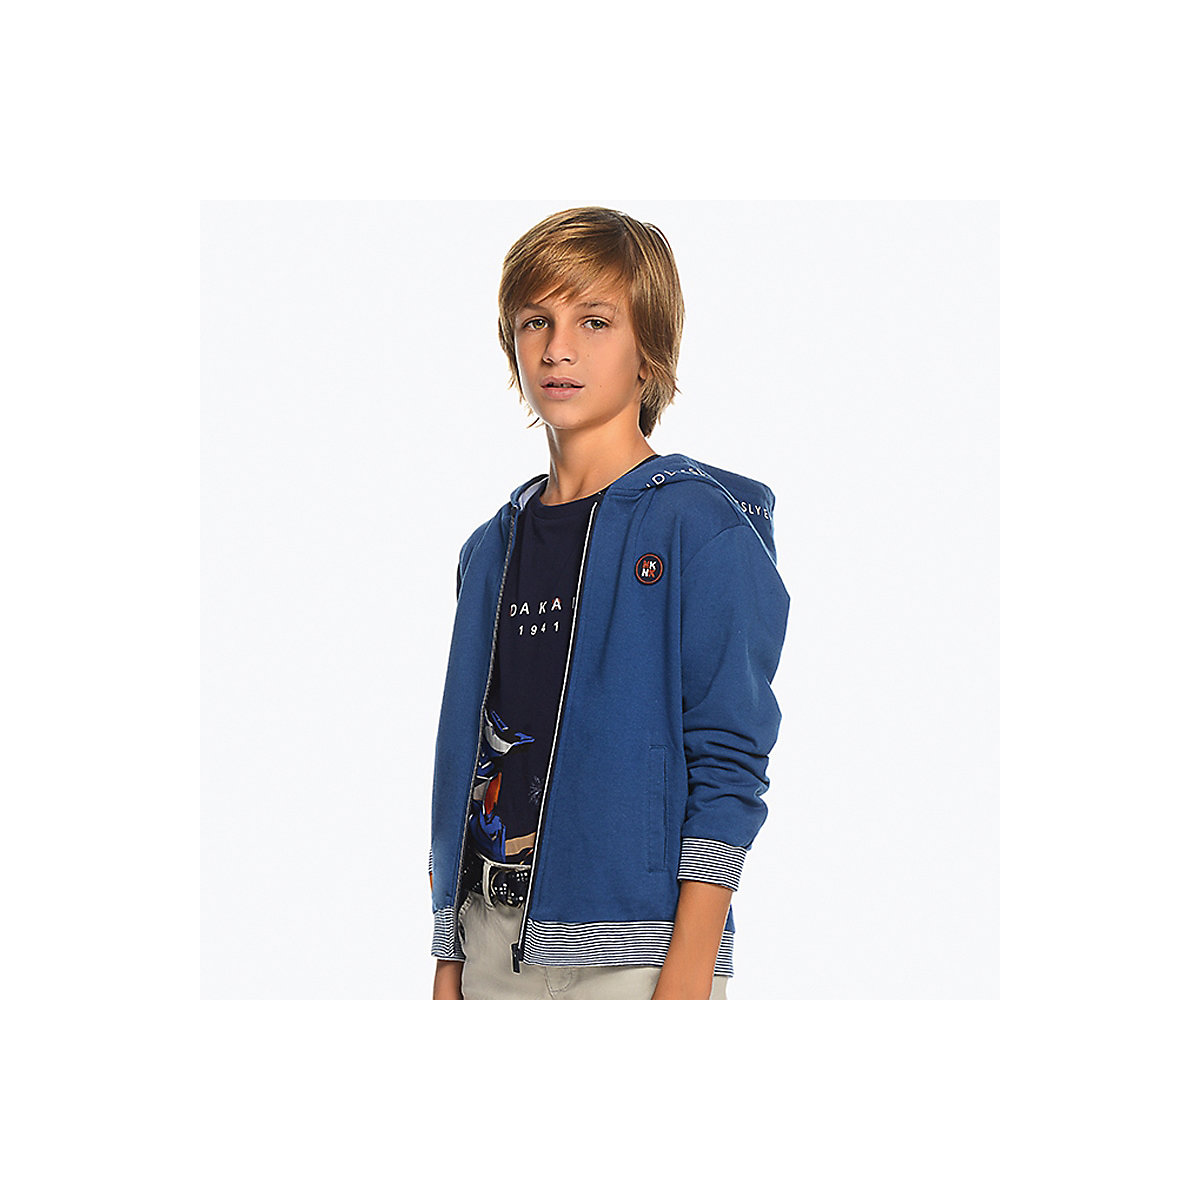 Фото - MAYORAL Hoodies & Sweatshirts 10689284 pullover jumper for boys and girls clothes children's sweatshirt Cotton Boys mayoral sweaters 10692403 pullover jumper for boys and girls jackets boys